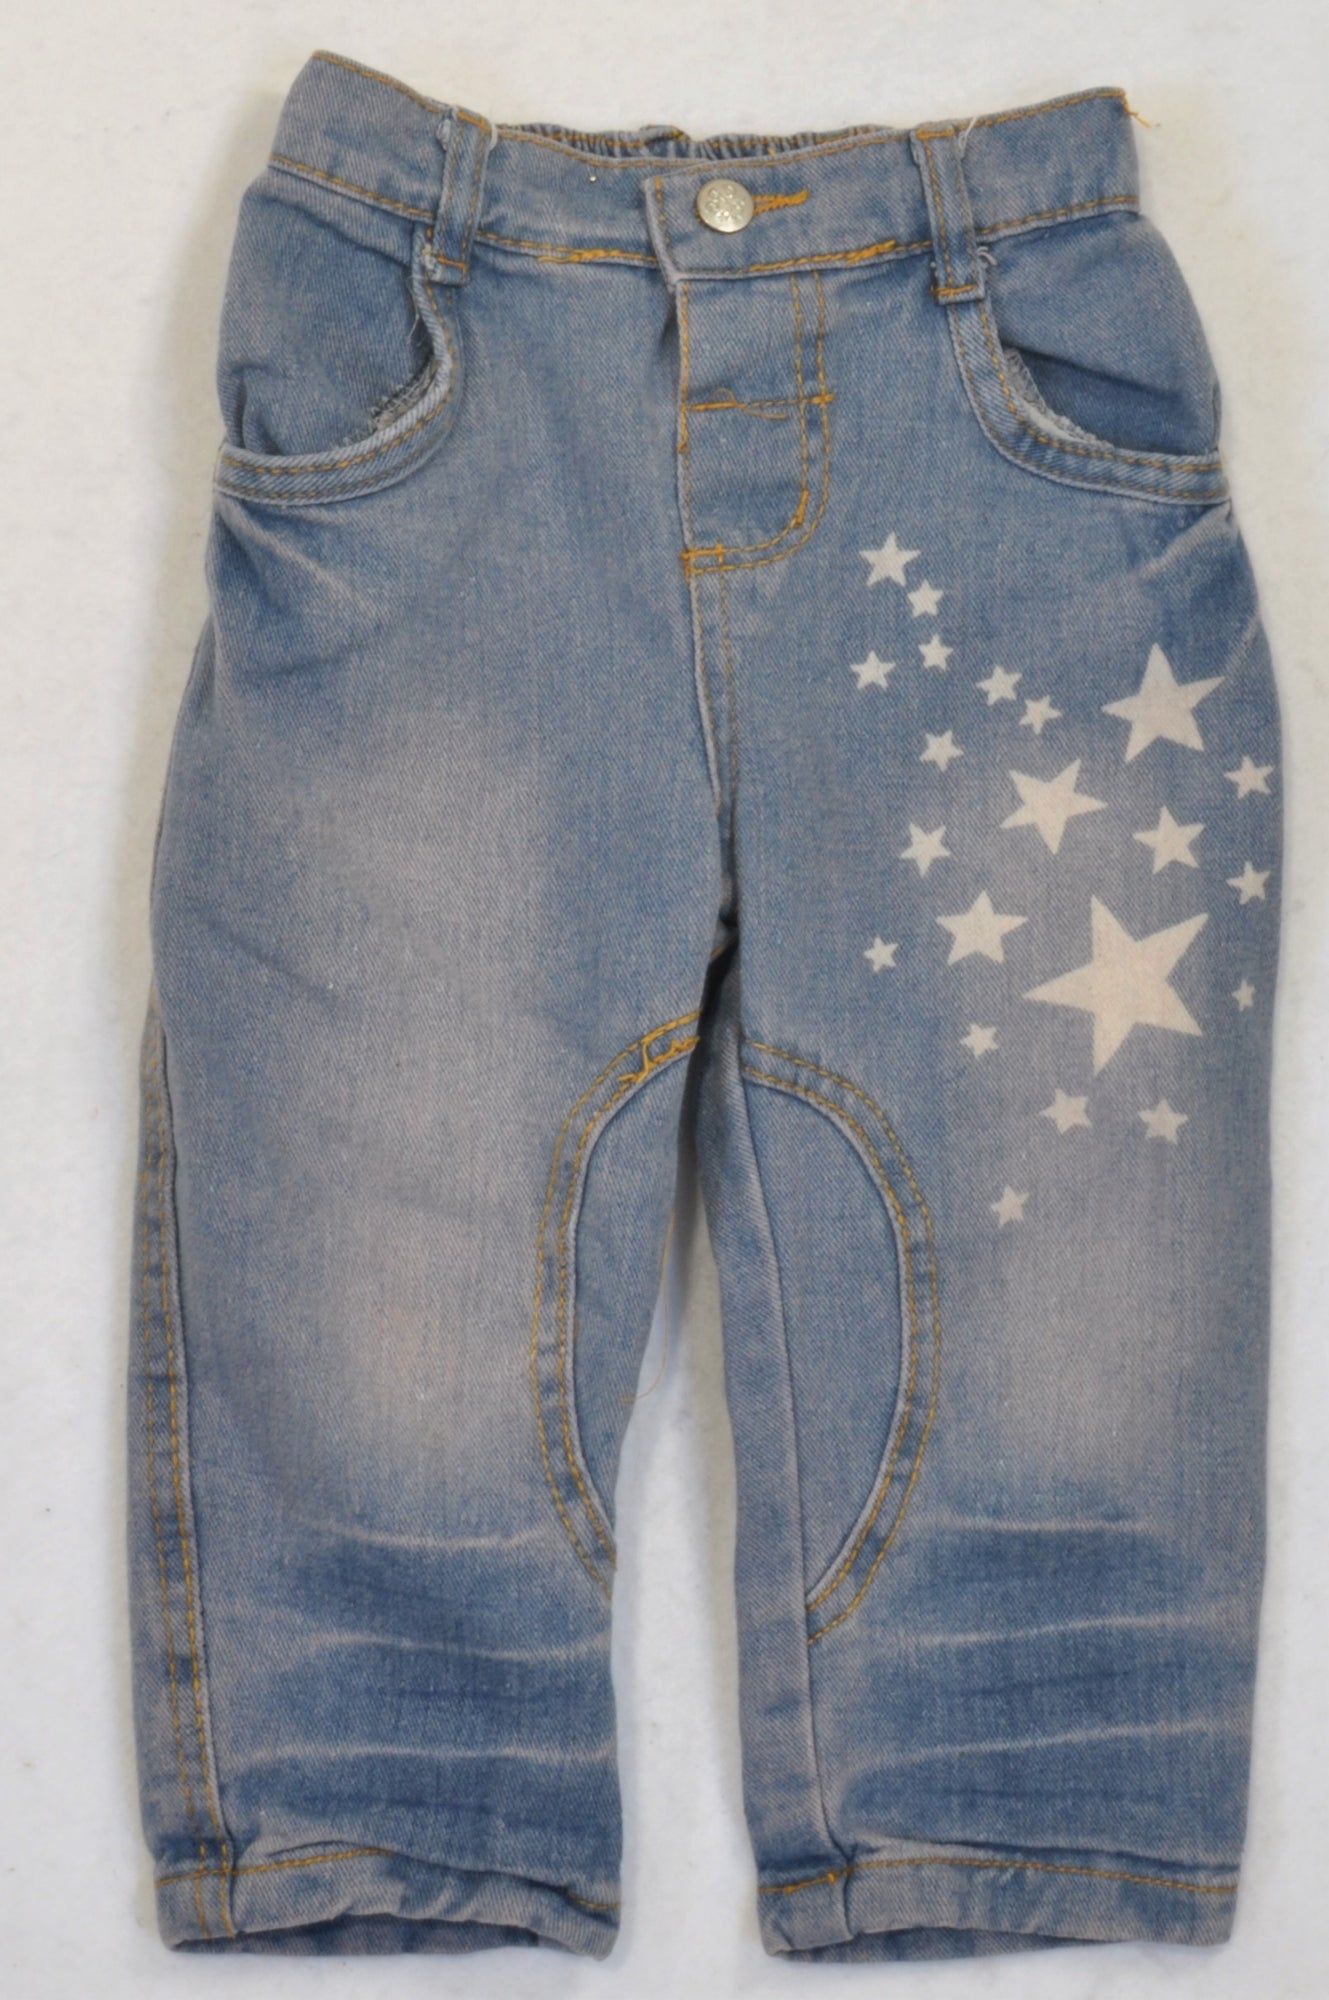 a72e4a750 Ackermans Stone Washed Star Jeans Boys 18-24 months – Once More